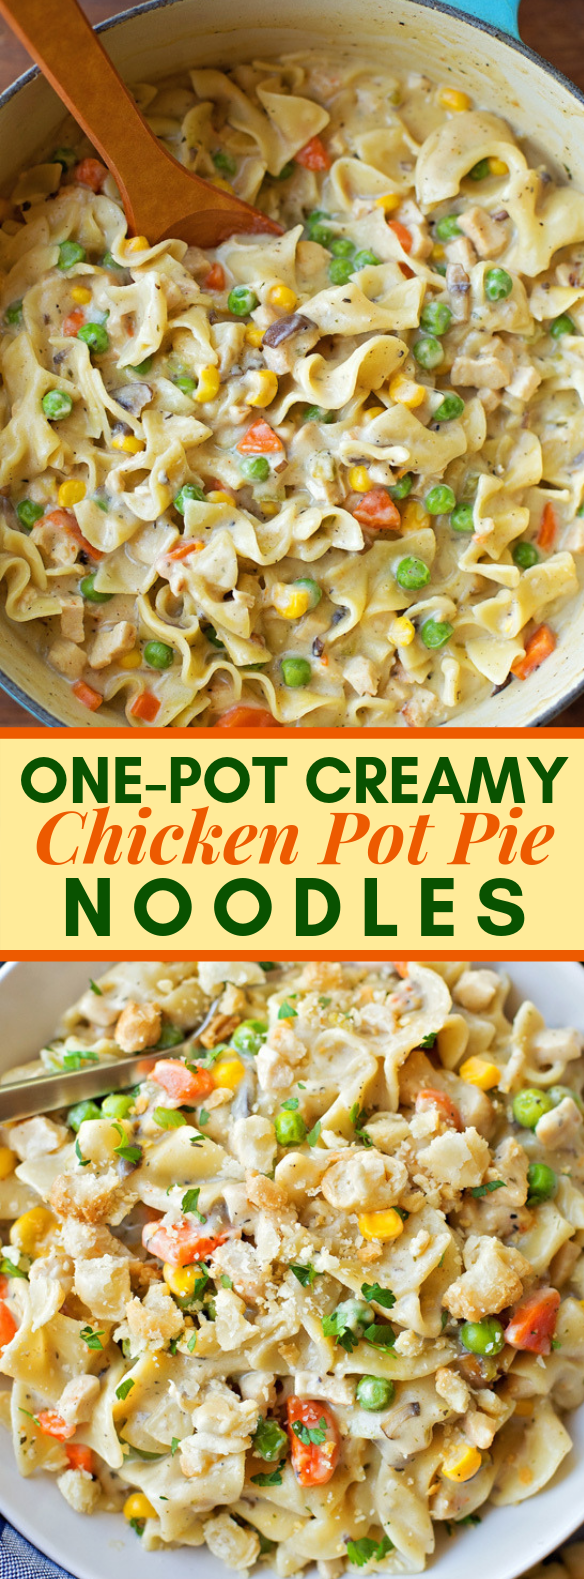 ONE-POT CREAMY CHICKEN POT PIE NOODLES #meals #lunch